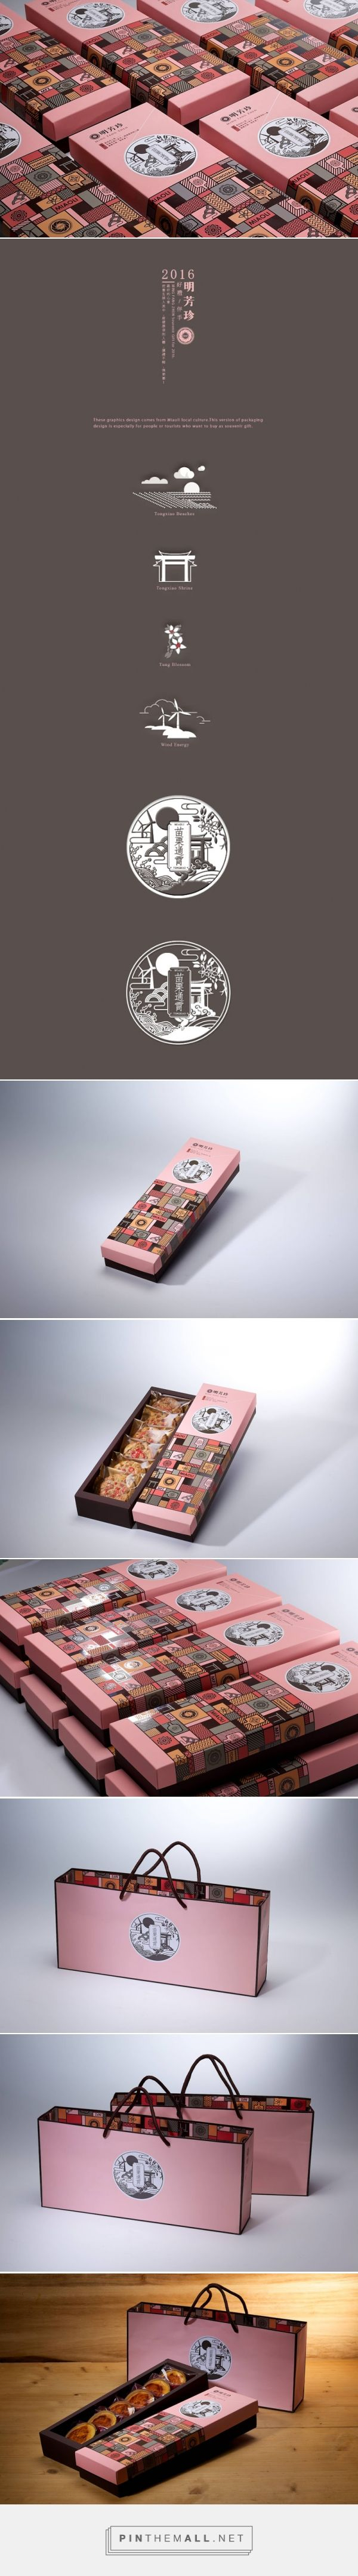 Ming Fang Zhen Souvenir packaging designed by AdVision Signs Inc. (Taiwan) - http://www.packagingoftheworld.com/2016/03/ming-fang-zhen-souvenir-gift.html